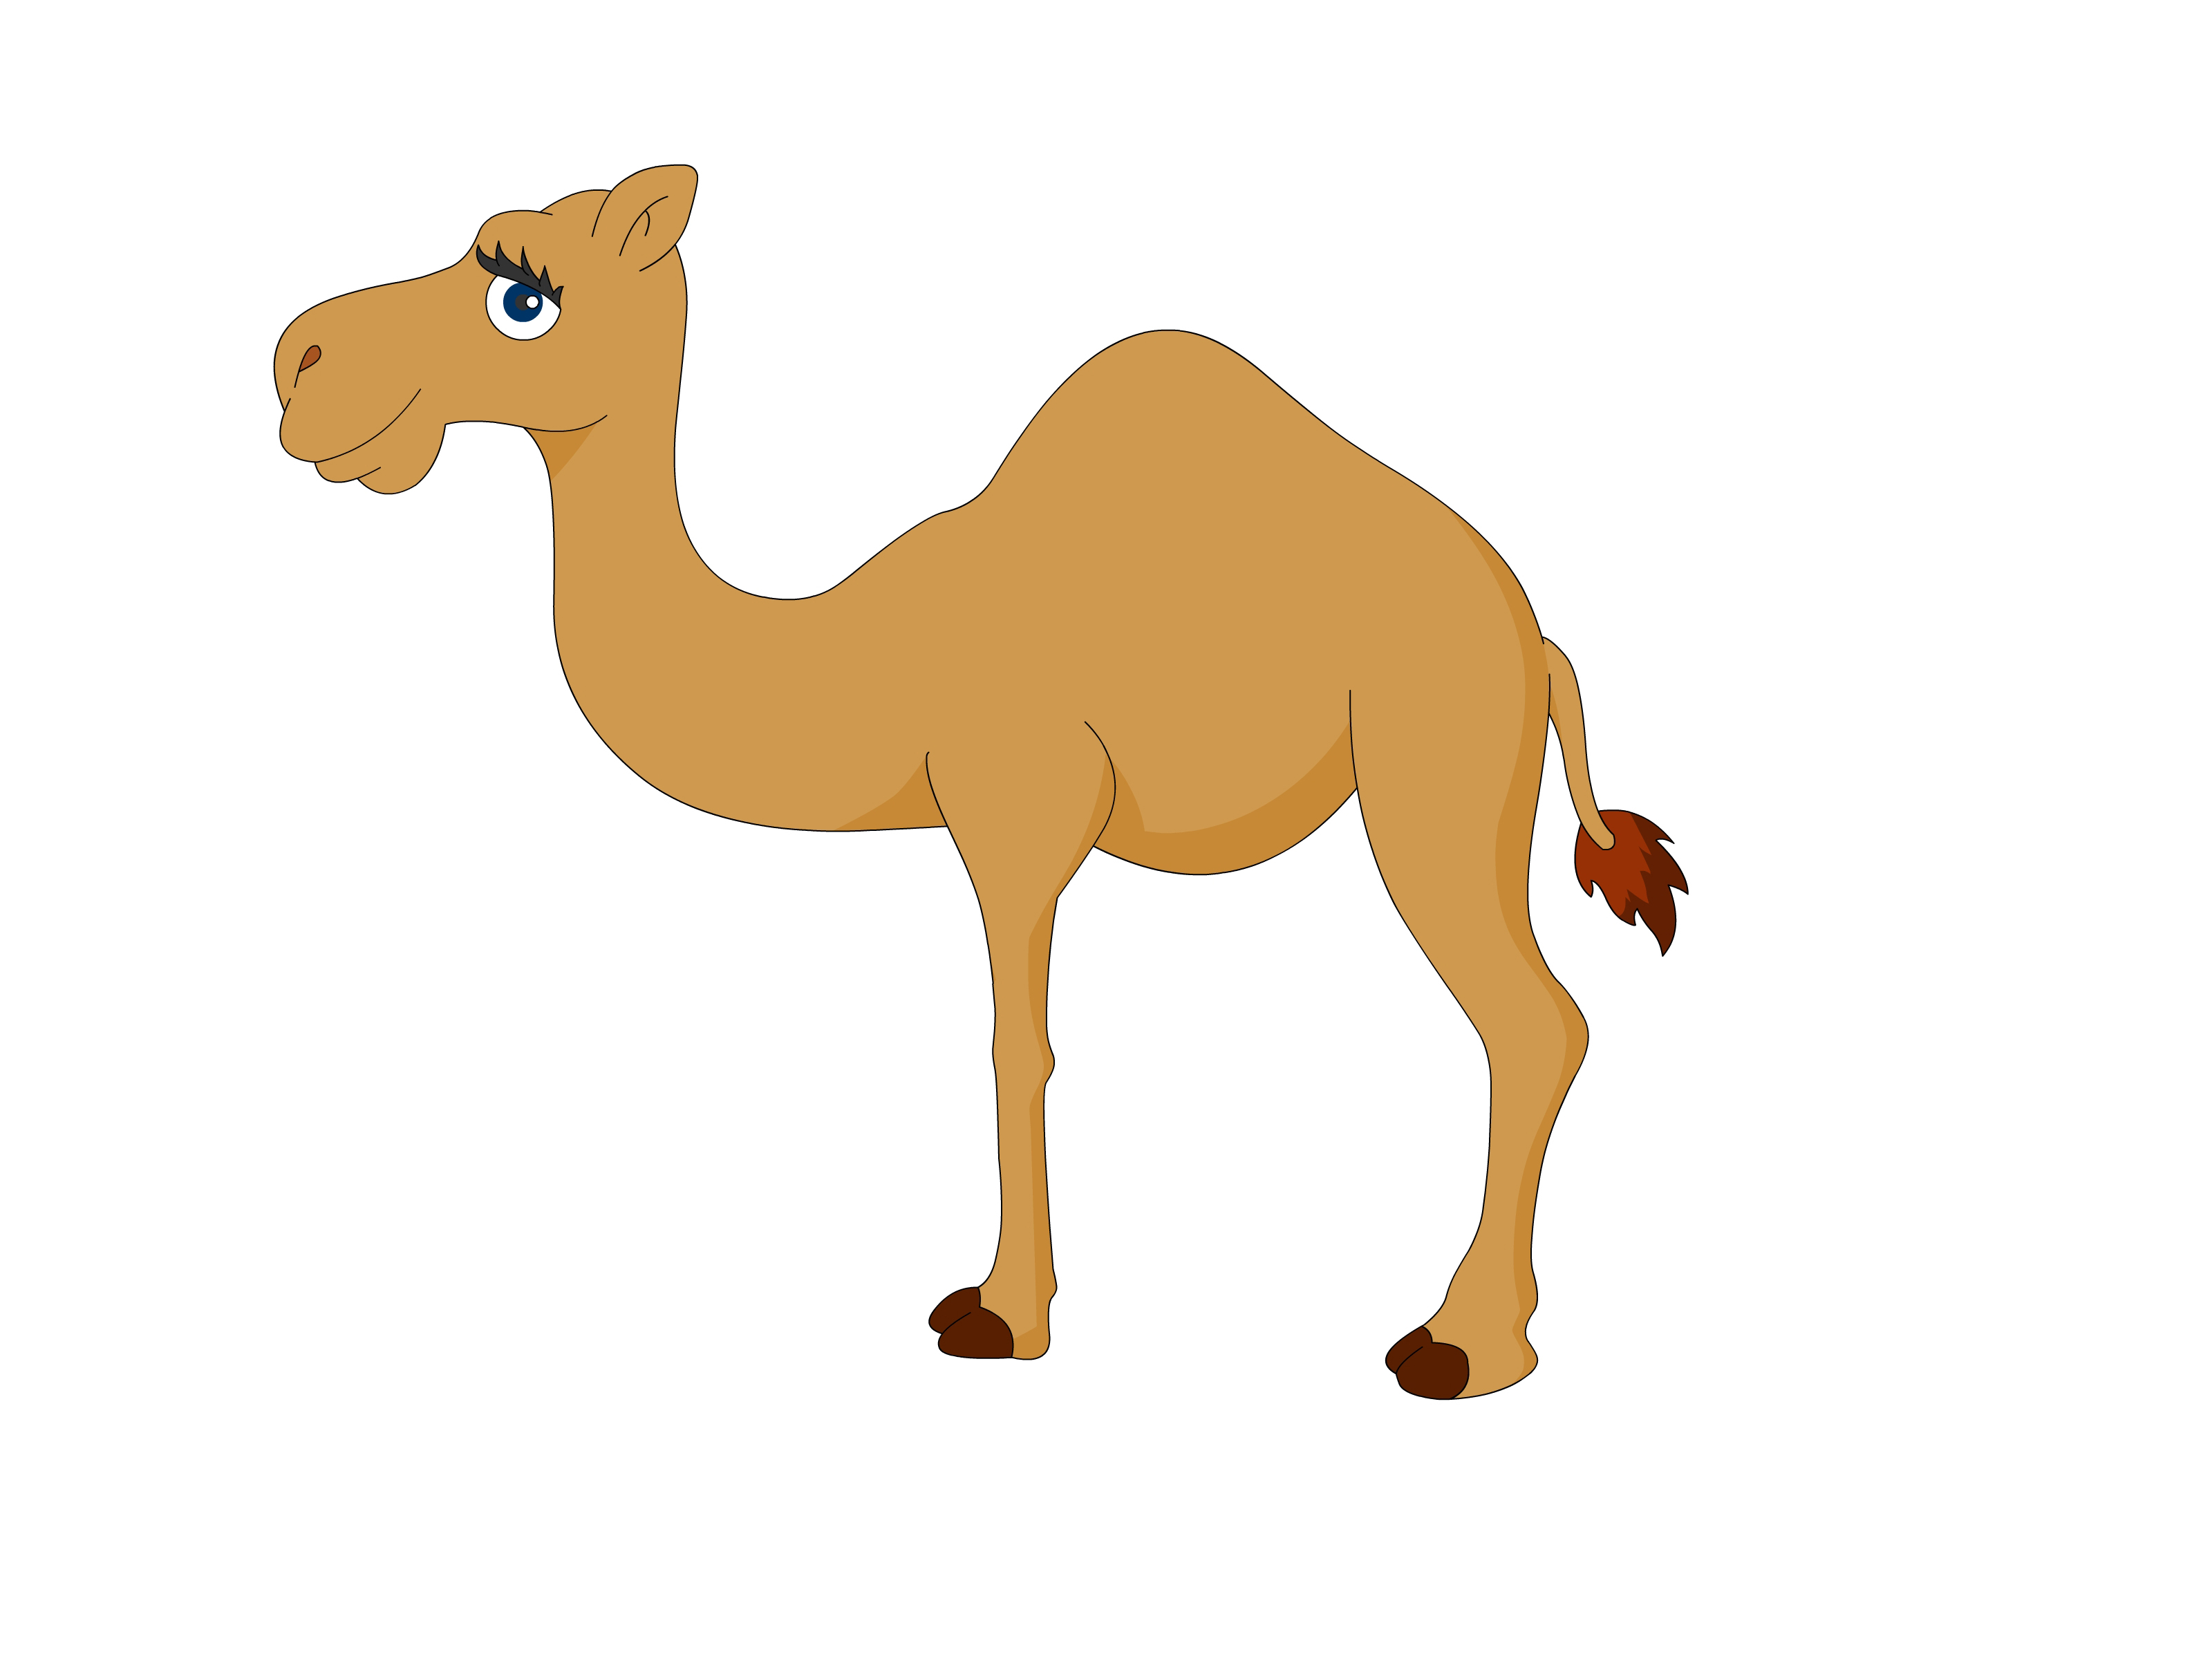 Moving camel clipart kid